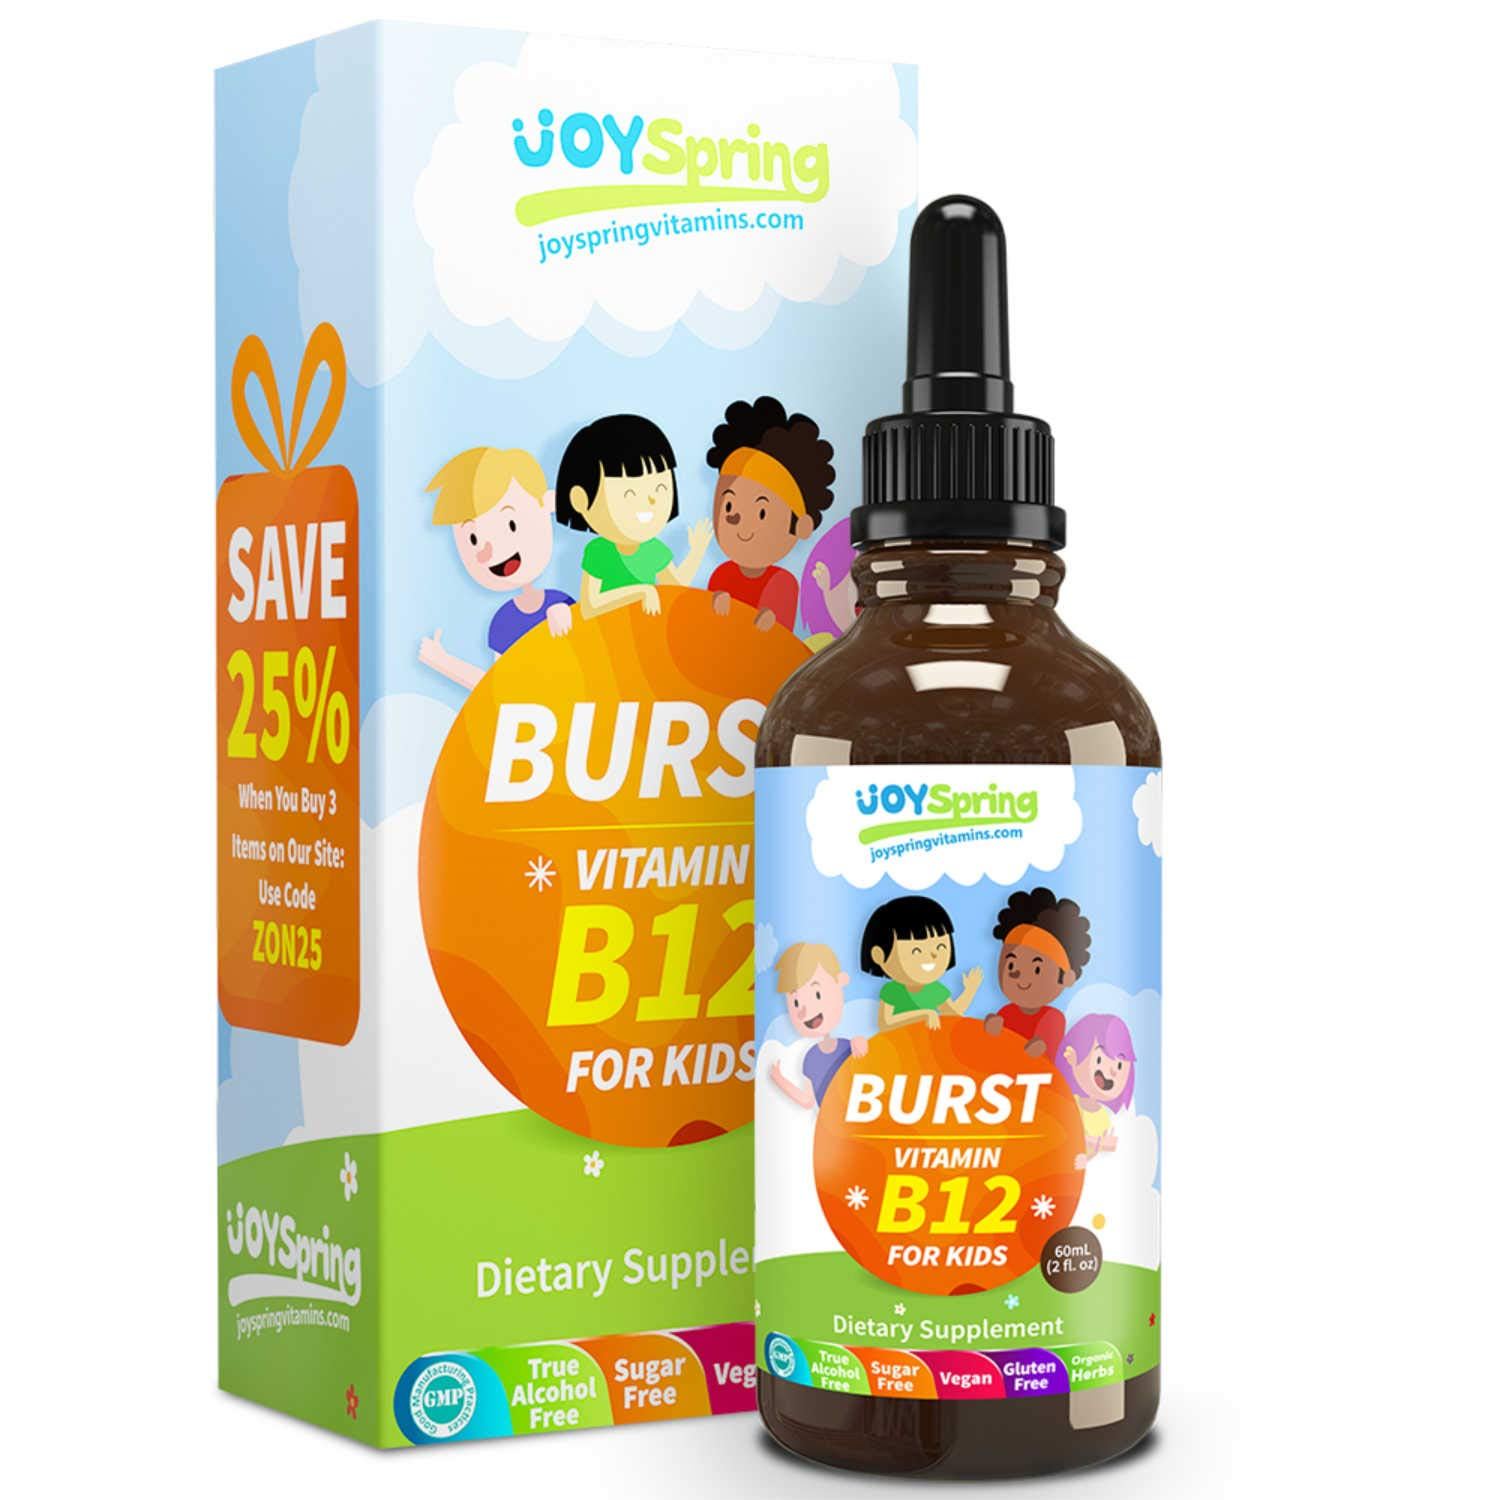 Burst B12 for Kids - Tasty Vitamin B Complex for Energy - Great Tasting Liquid Drops for Picky Eaters by JoySpring